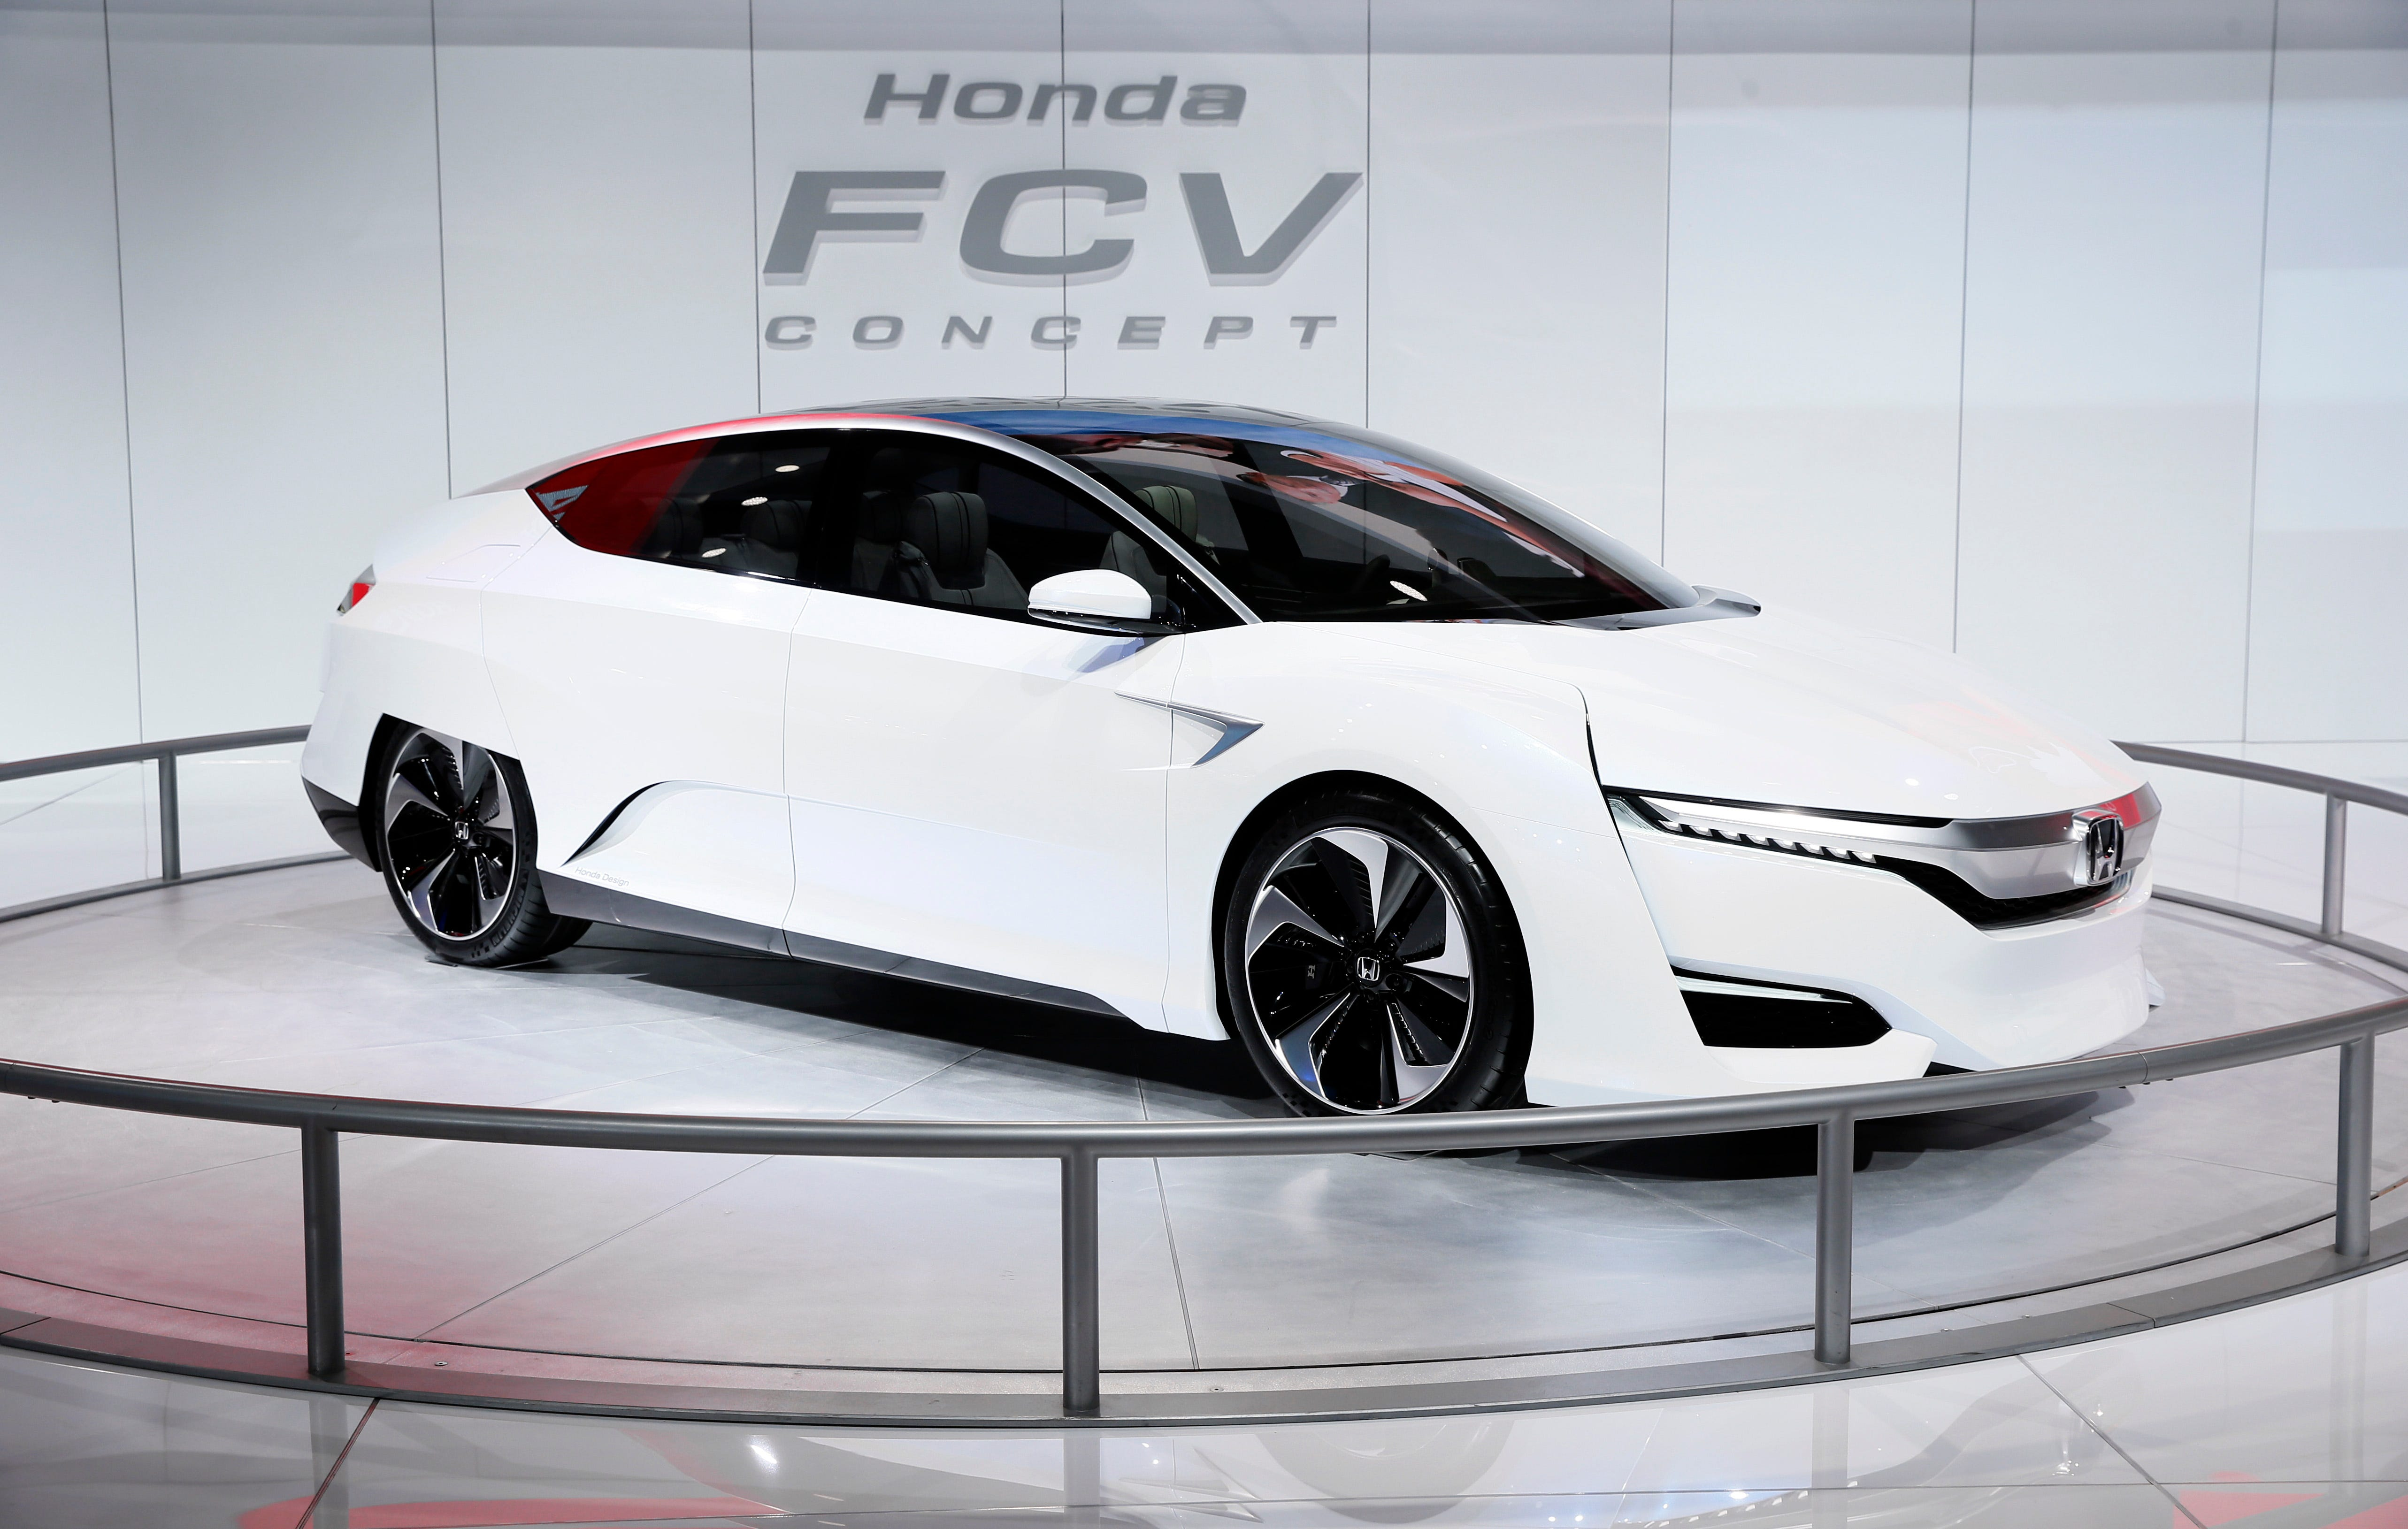 Honda Of Des Moines U003eu003e Honda To Introduce New Hydrogen Fuel Cell Vehicle In  2016